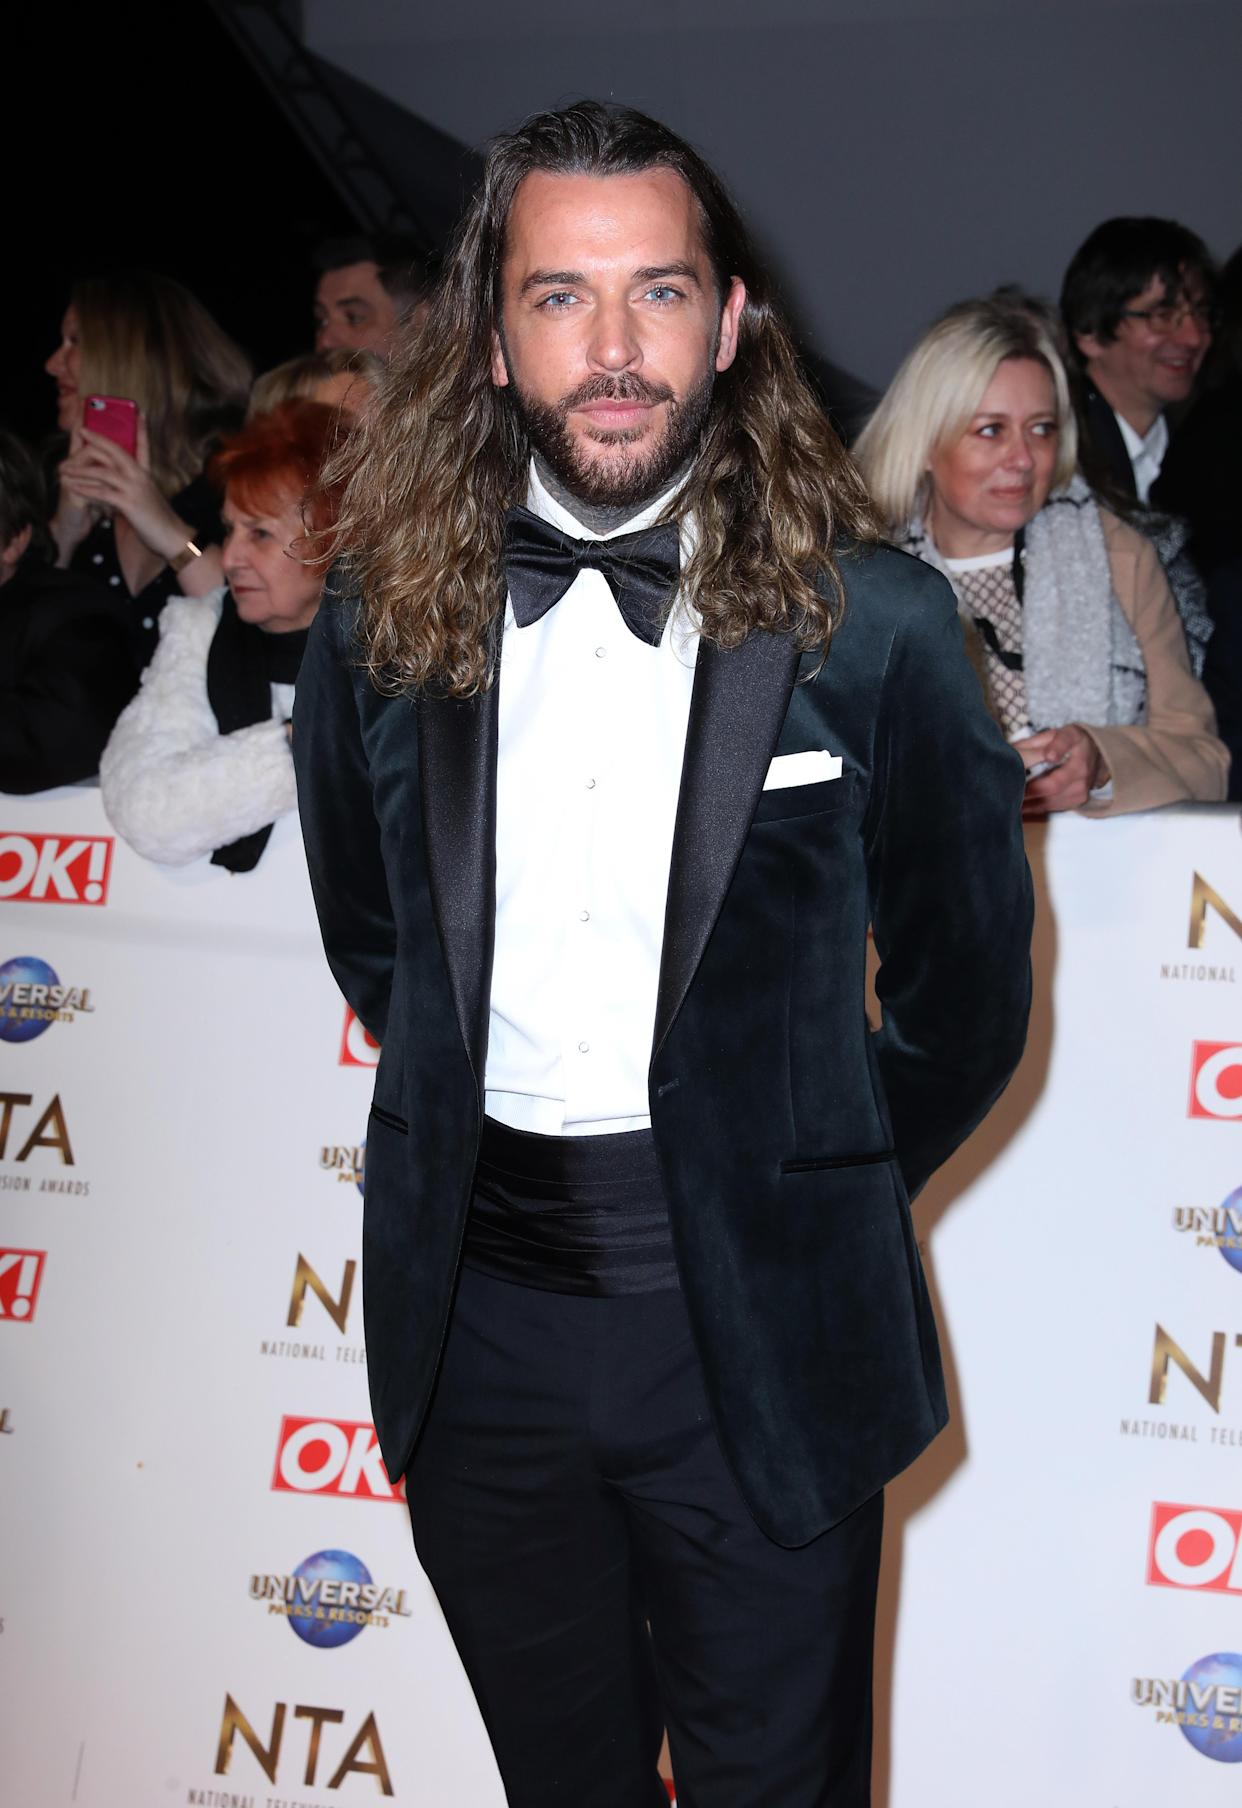 Pete Wicks attending the National Television Awards 2020 held at the O2 Arena, London.